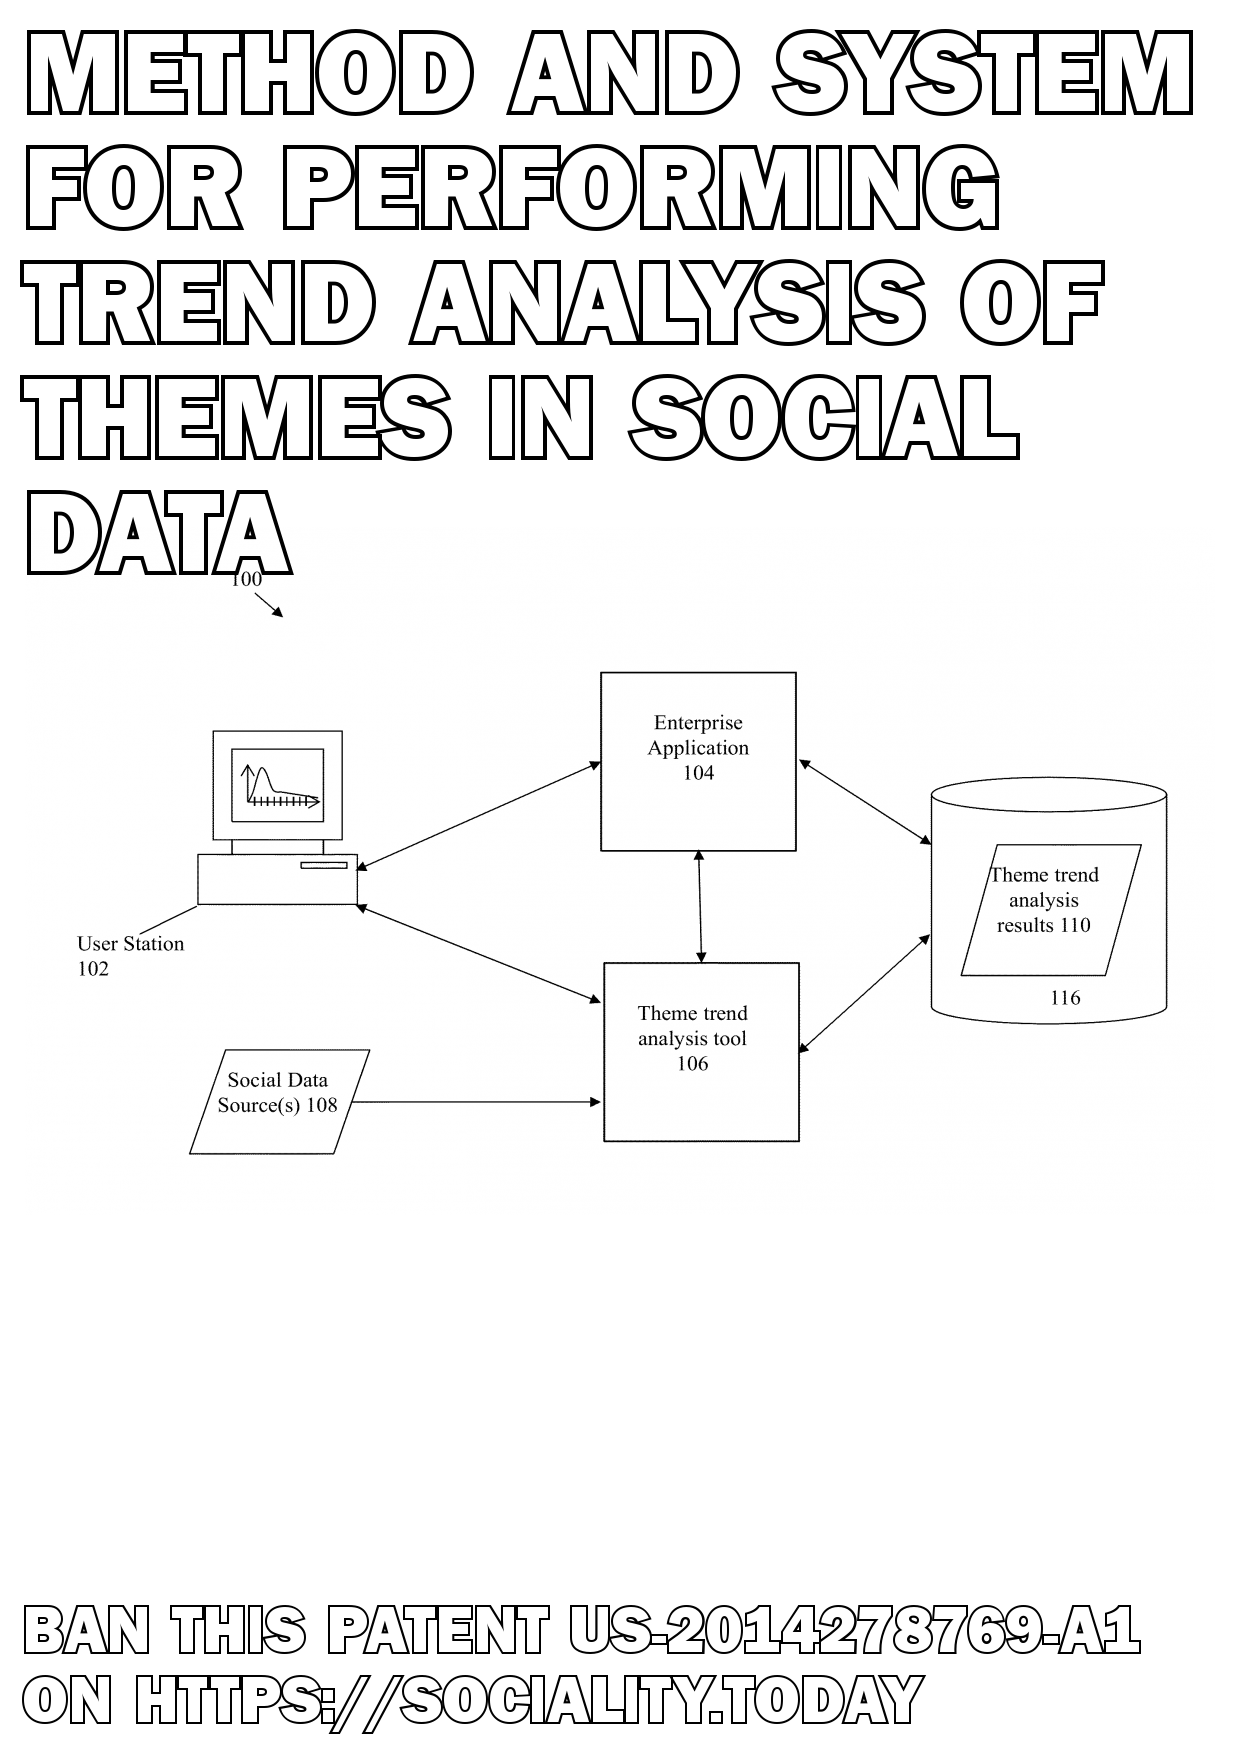 Method and system for performing trend analysis of themes in social data  - US-2014278769-A1